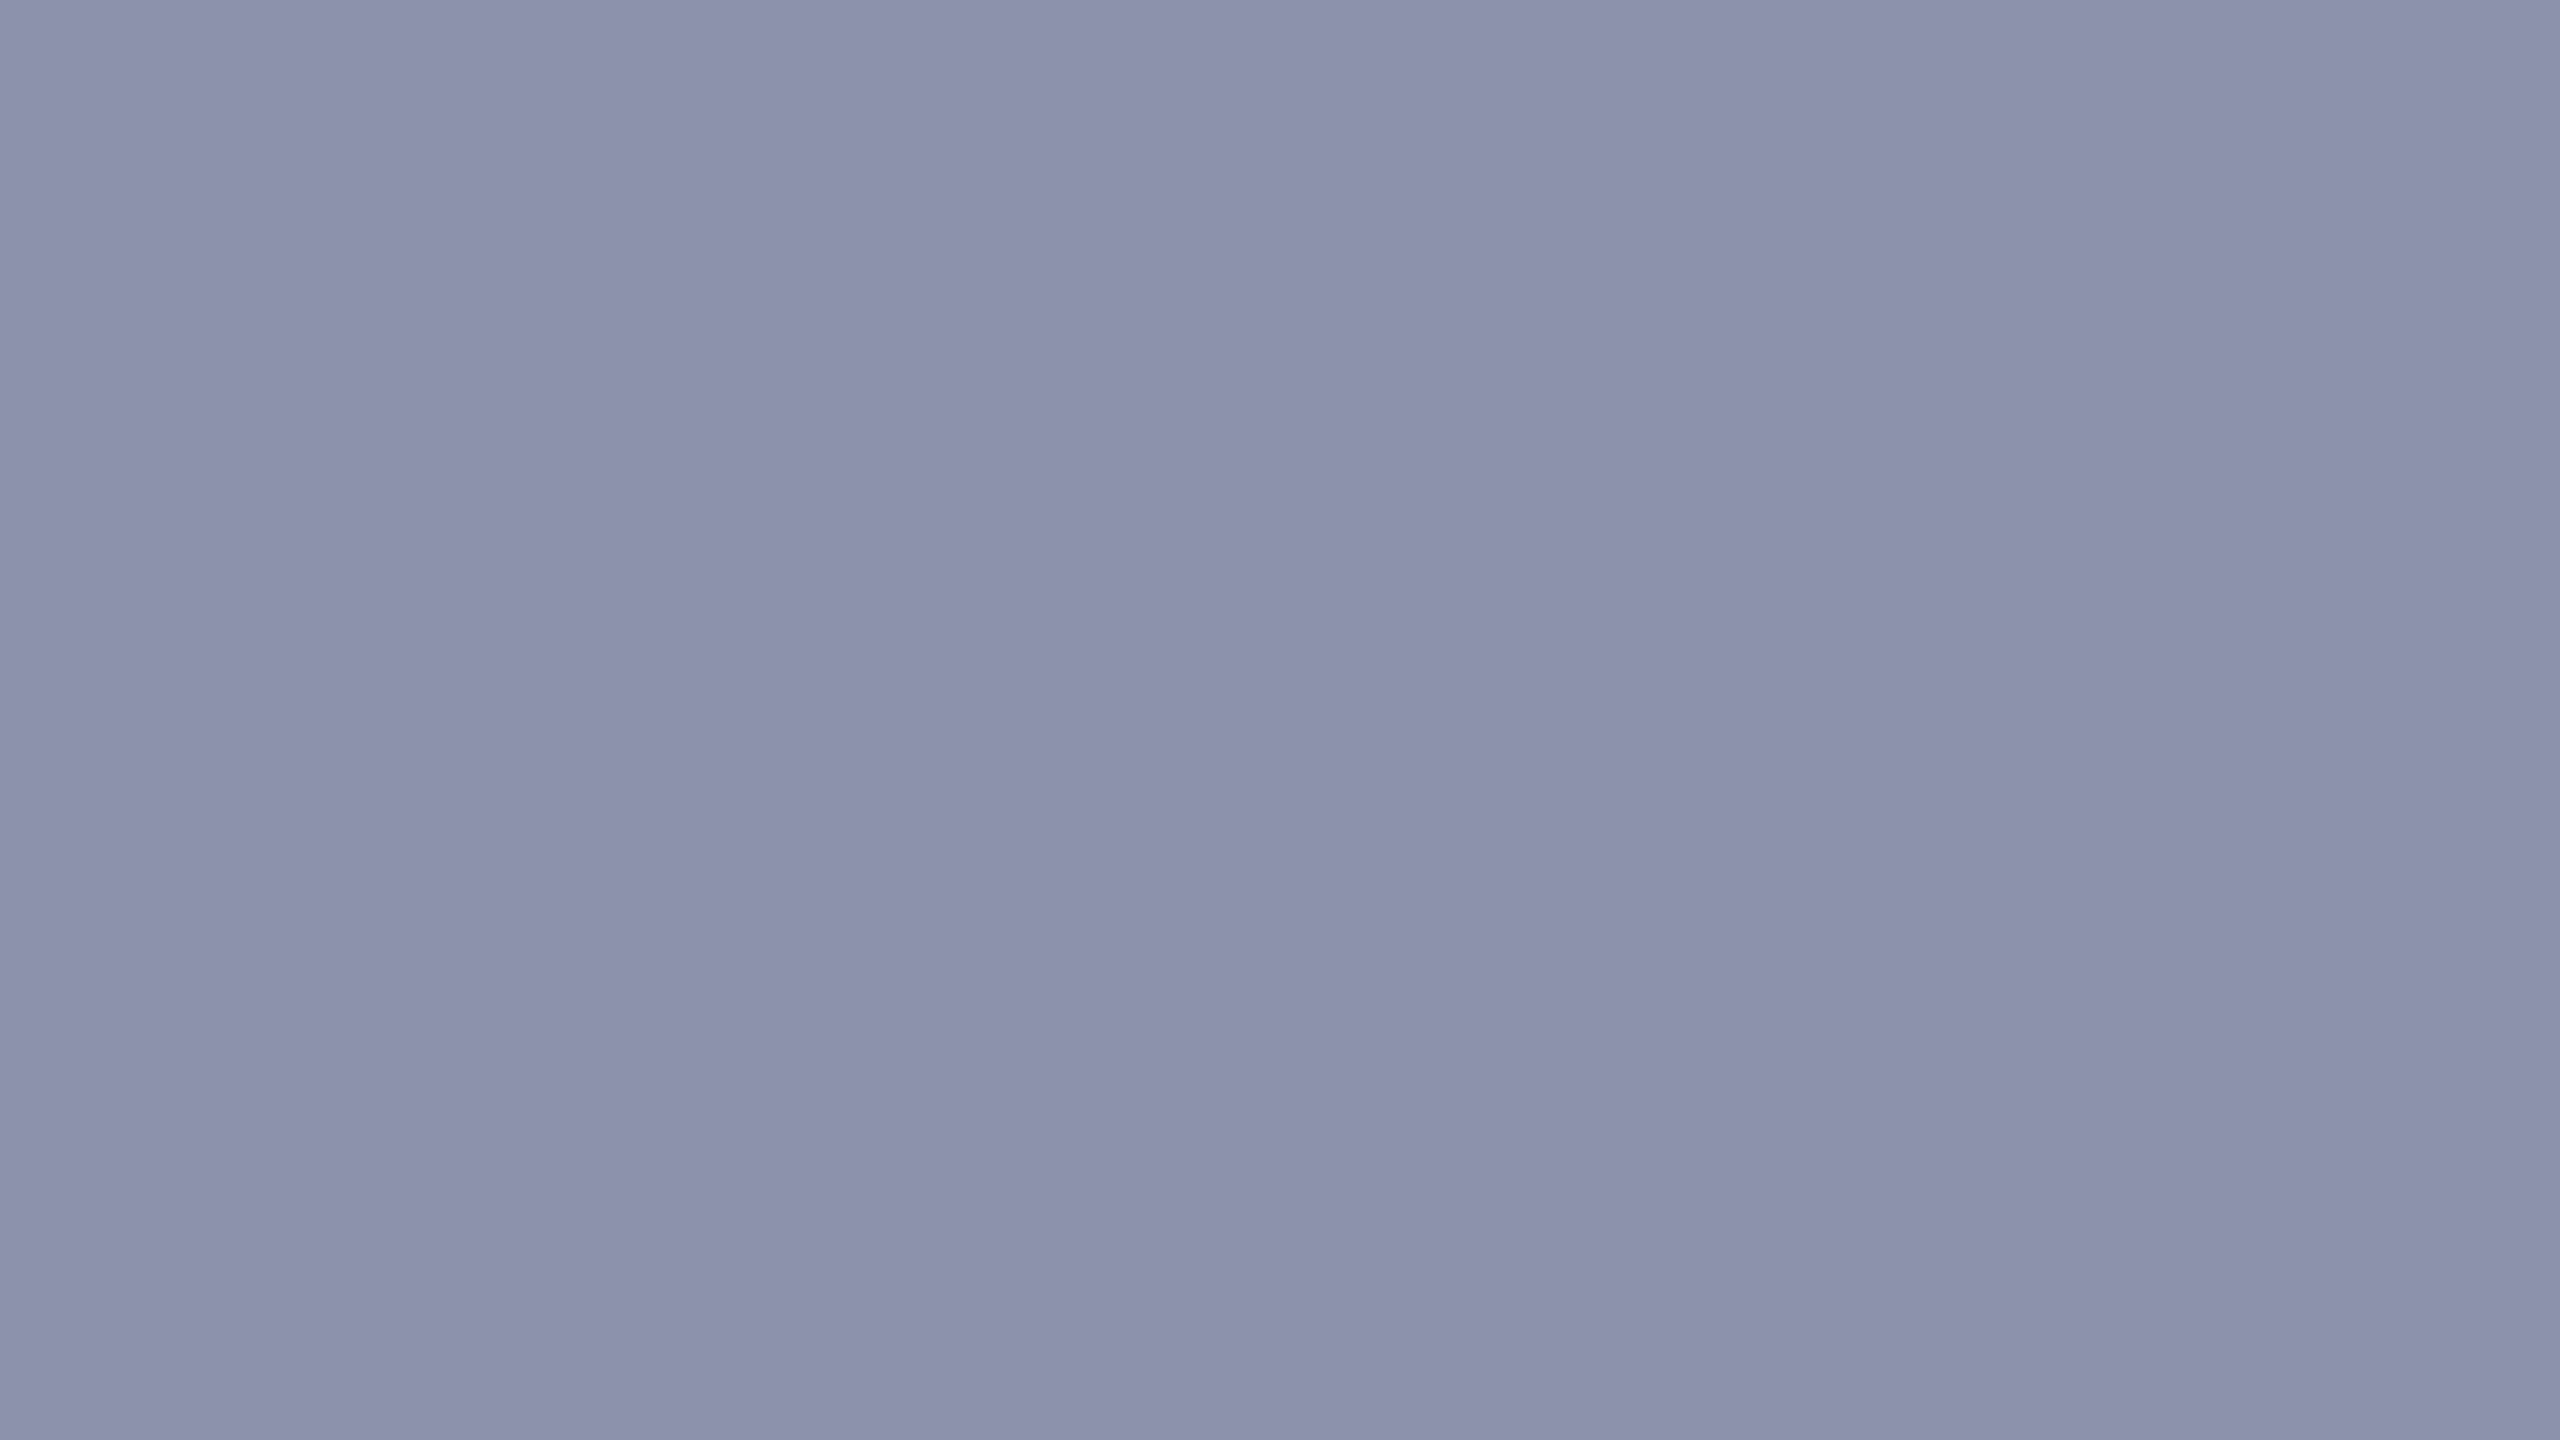 2560x1440 Gray-blue Solid Color Background